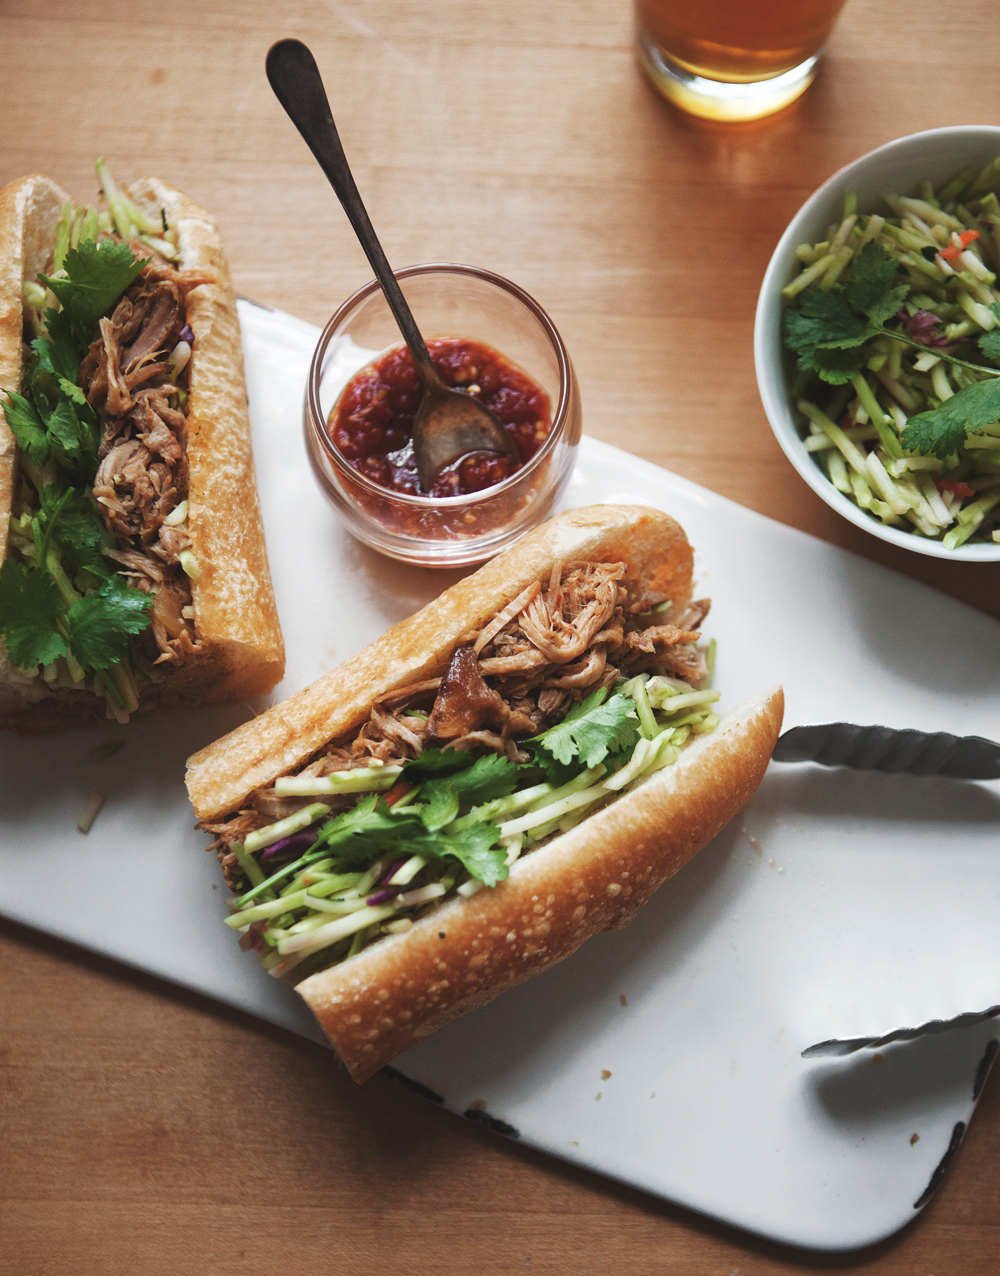 Thai-style-pulled-pork-banh-mi_04.jpg